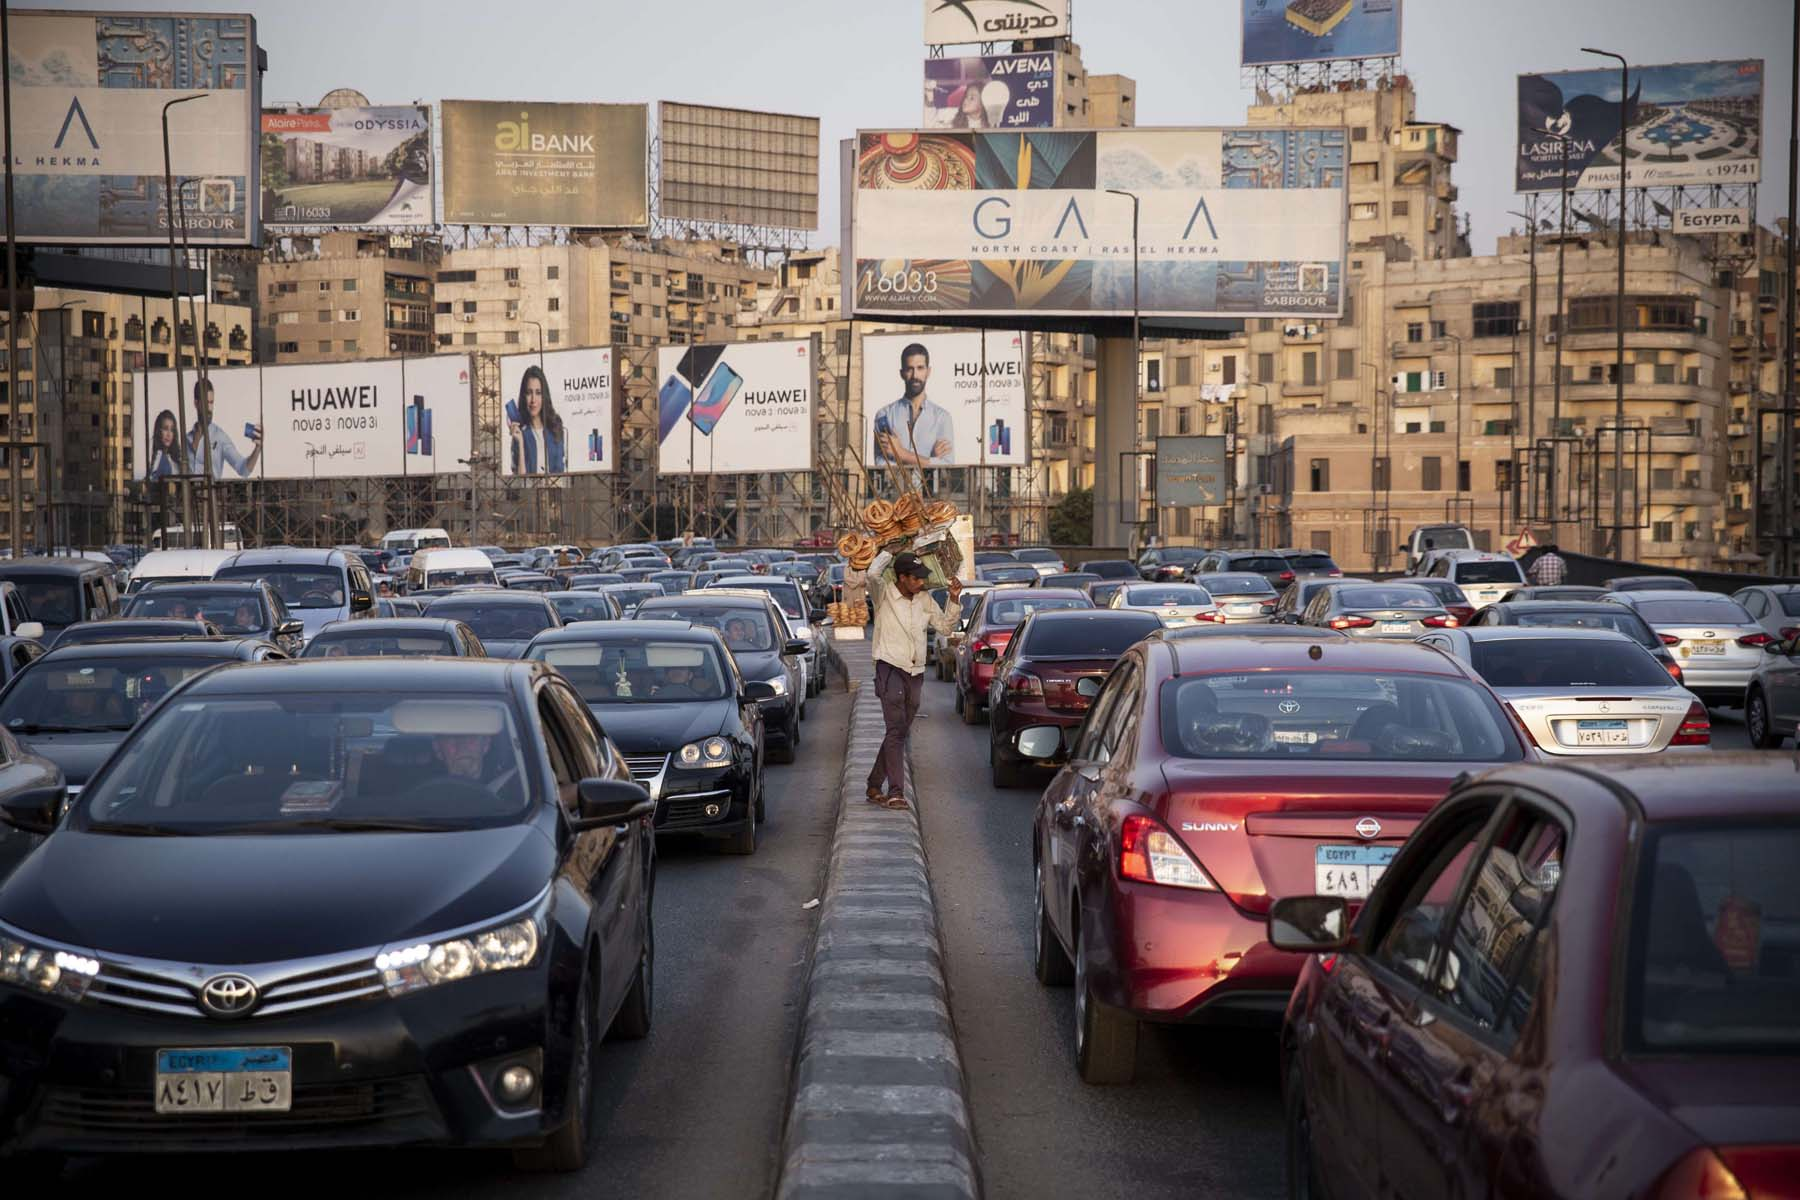 Big market. A street vendor sells snacks to drivers stuck in a traffic jam backdropped by advertising billboards.     (Samer Abdallah)